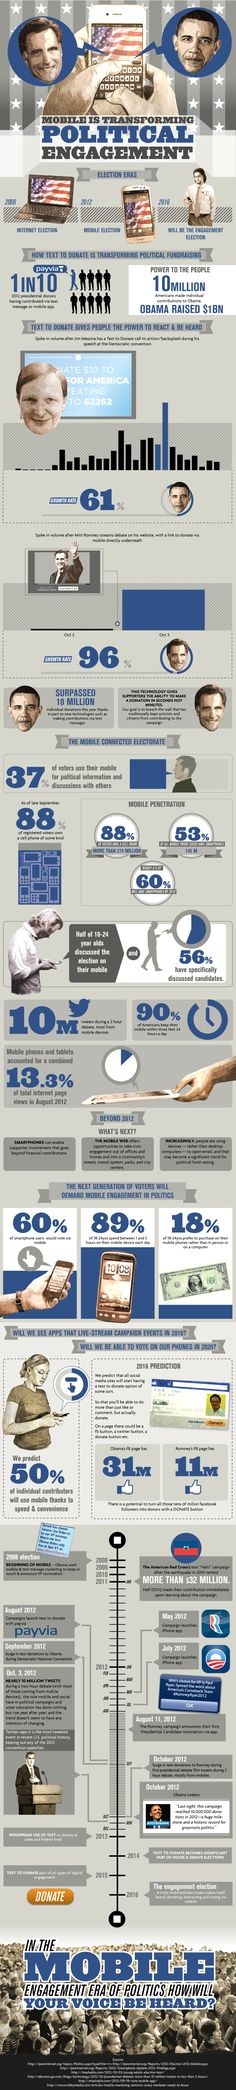 How Mobile Is Transforming Political Engagement #INFOGRAPHIC